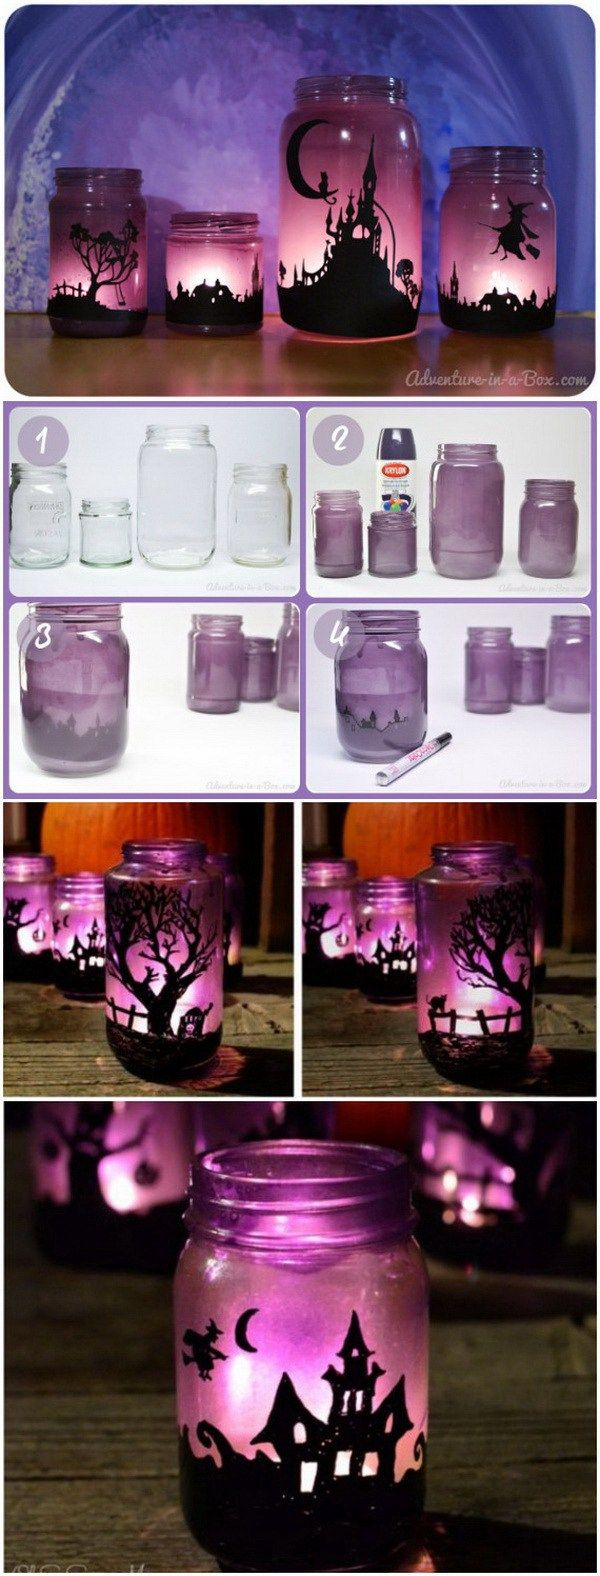 Enchanting Halloween Lanterns. Turn a bunch of Mason jars into enchanting lanterns to decorate your house for Halloween.